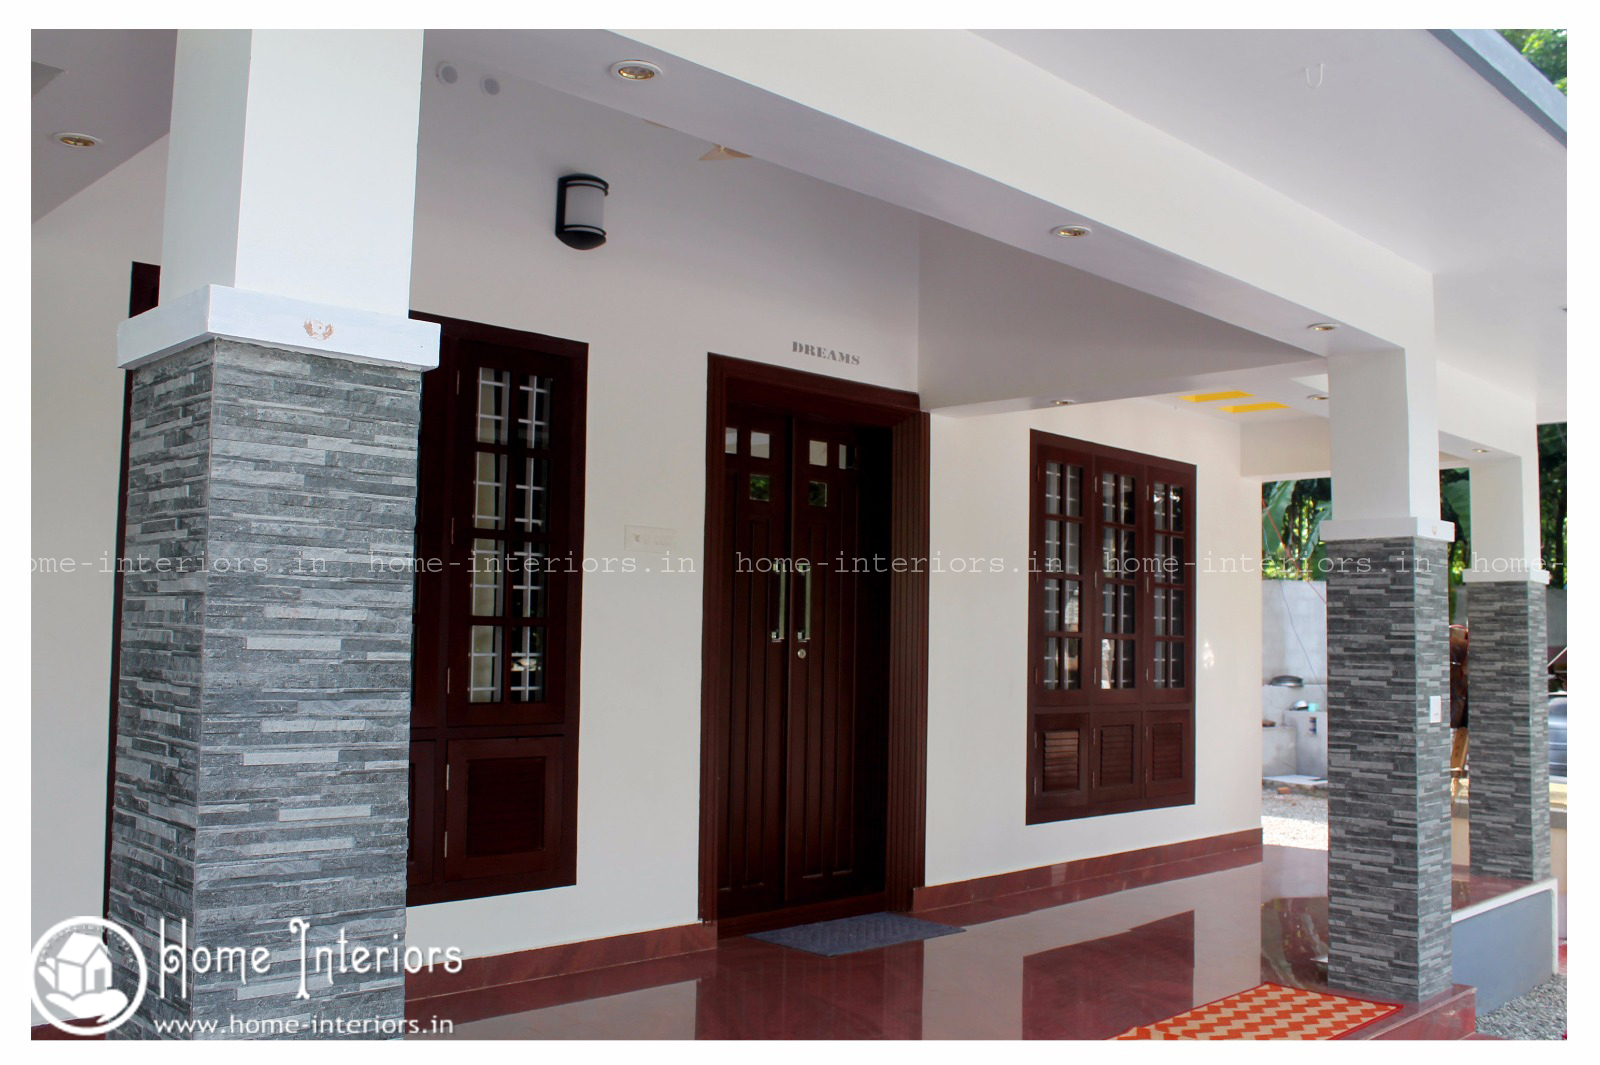 2350 sq ft double floor contemporary home interior designs for House interior design kerala photos